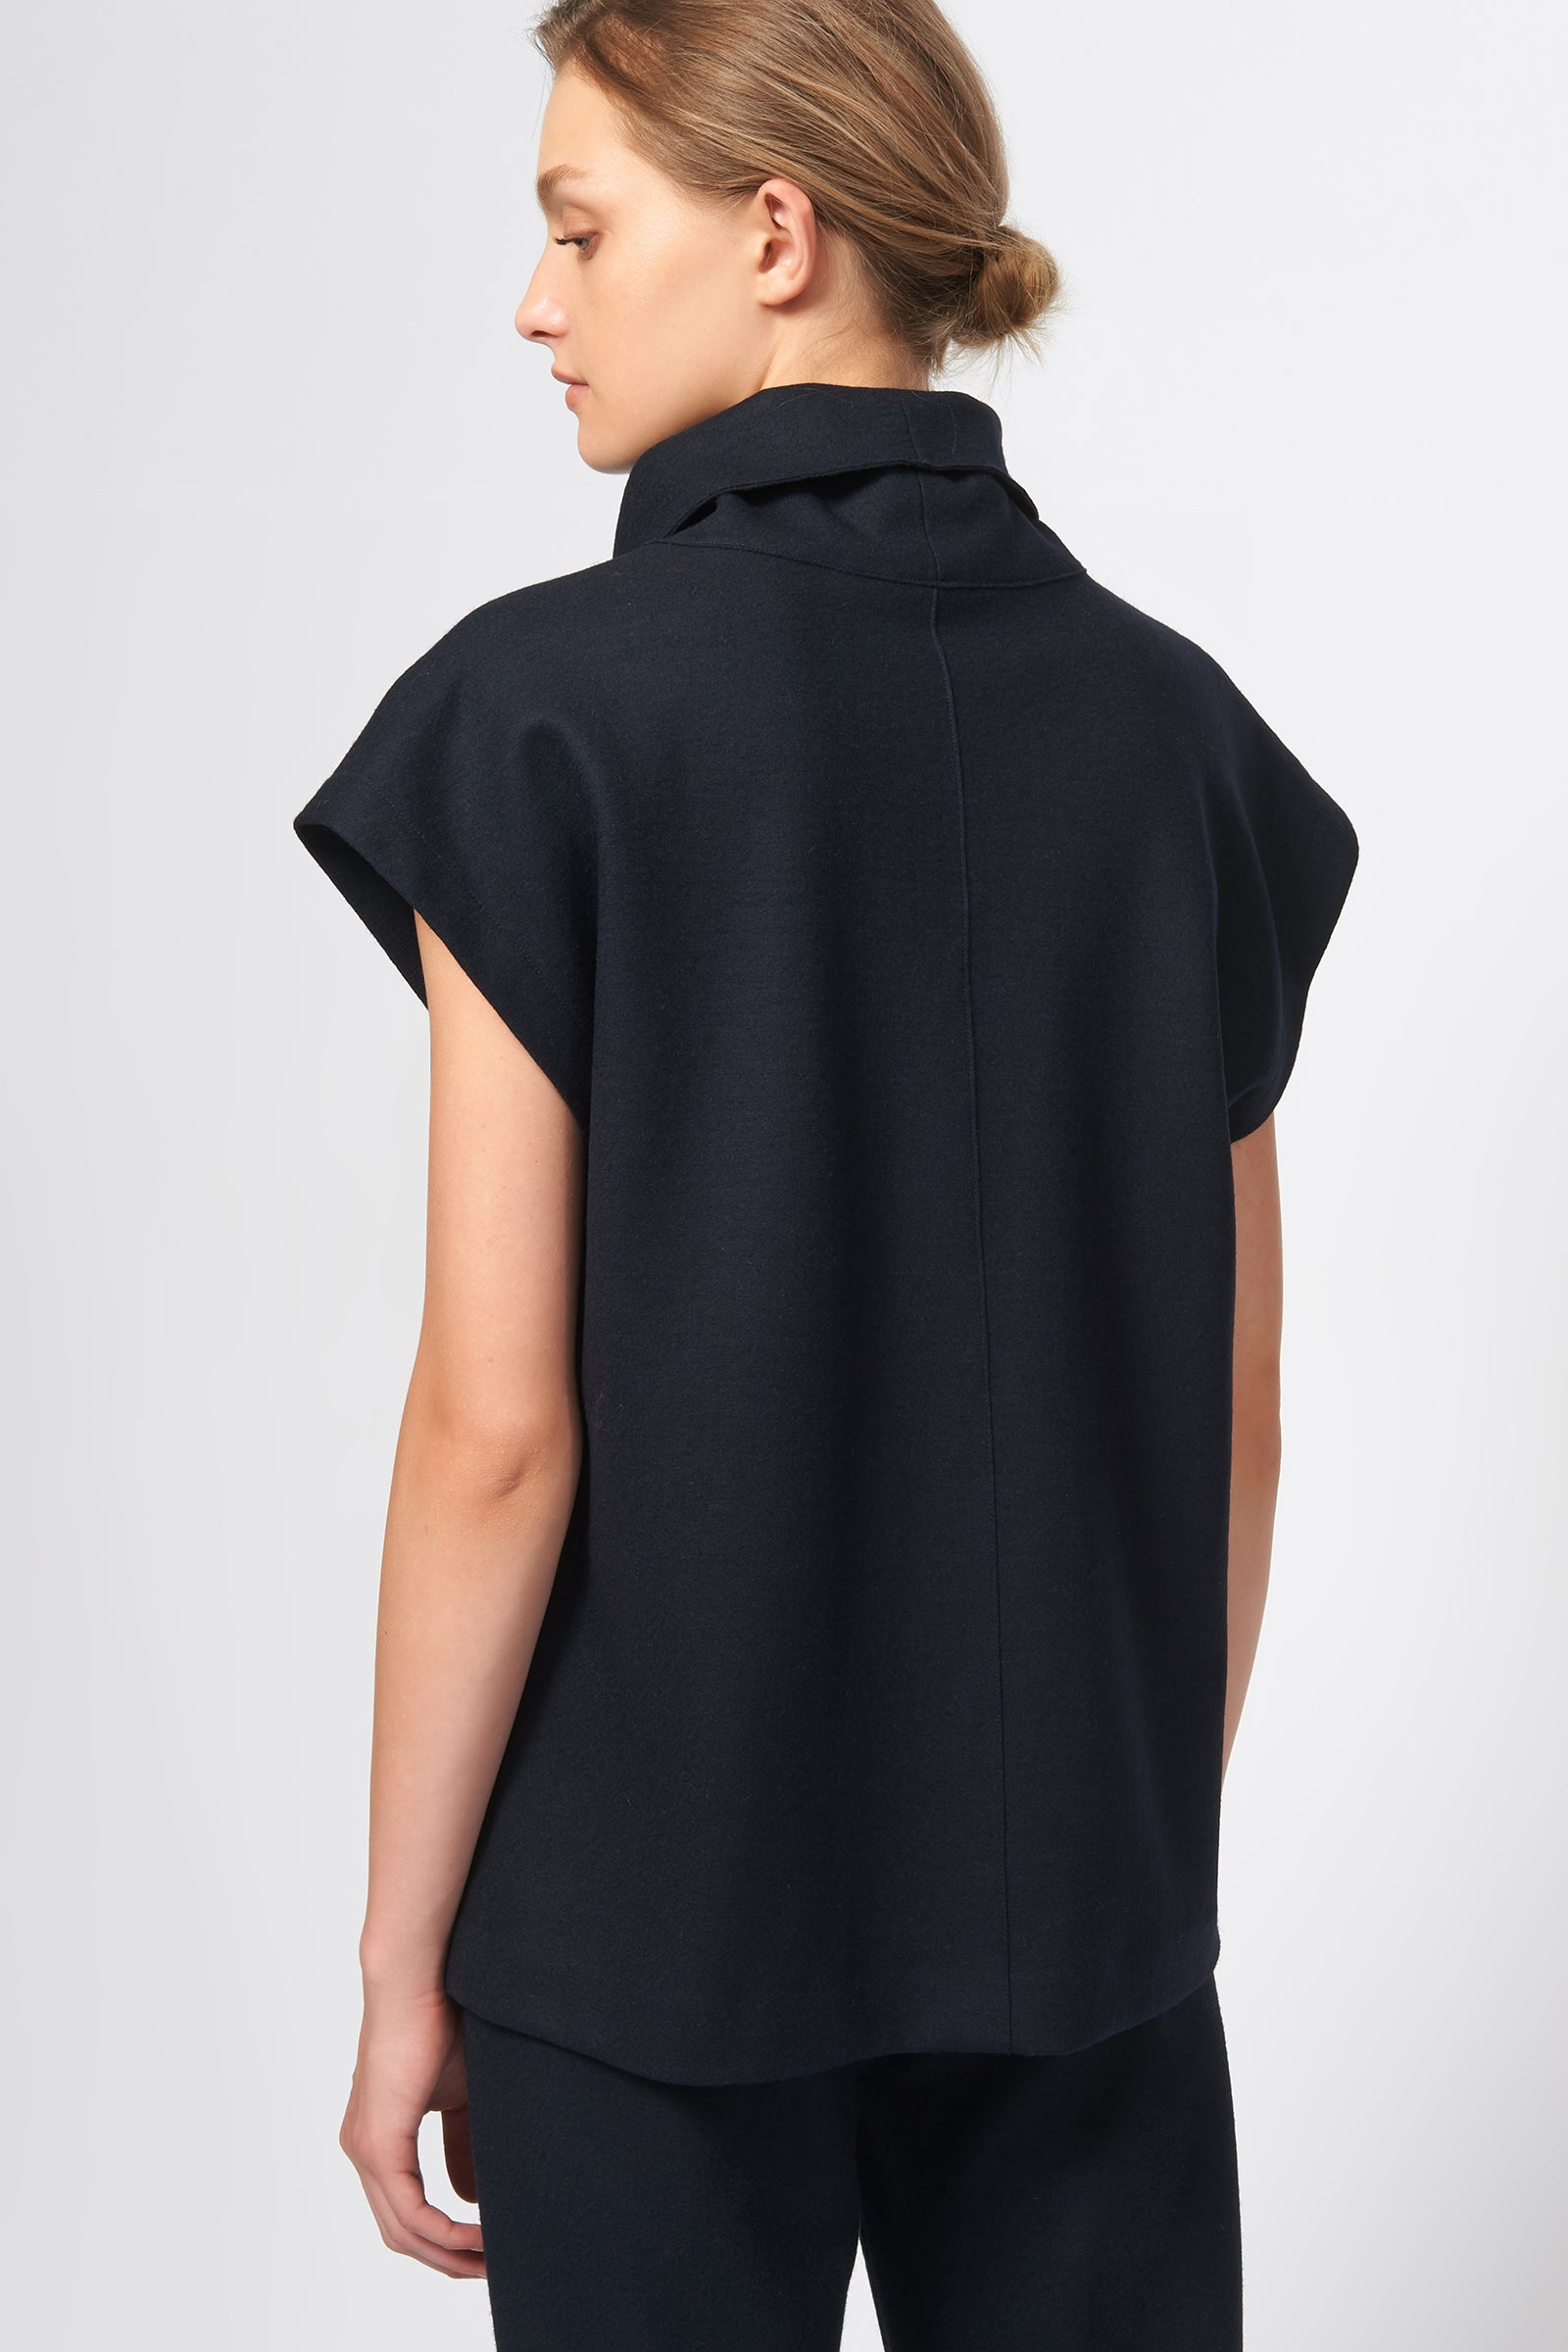 Kal Rieman Seamed Cap Sleeve Turtleneck in Midnight on Model Front View